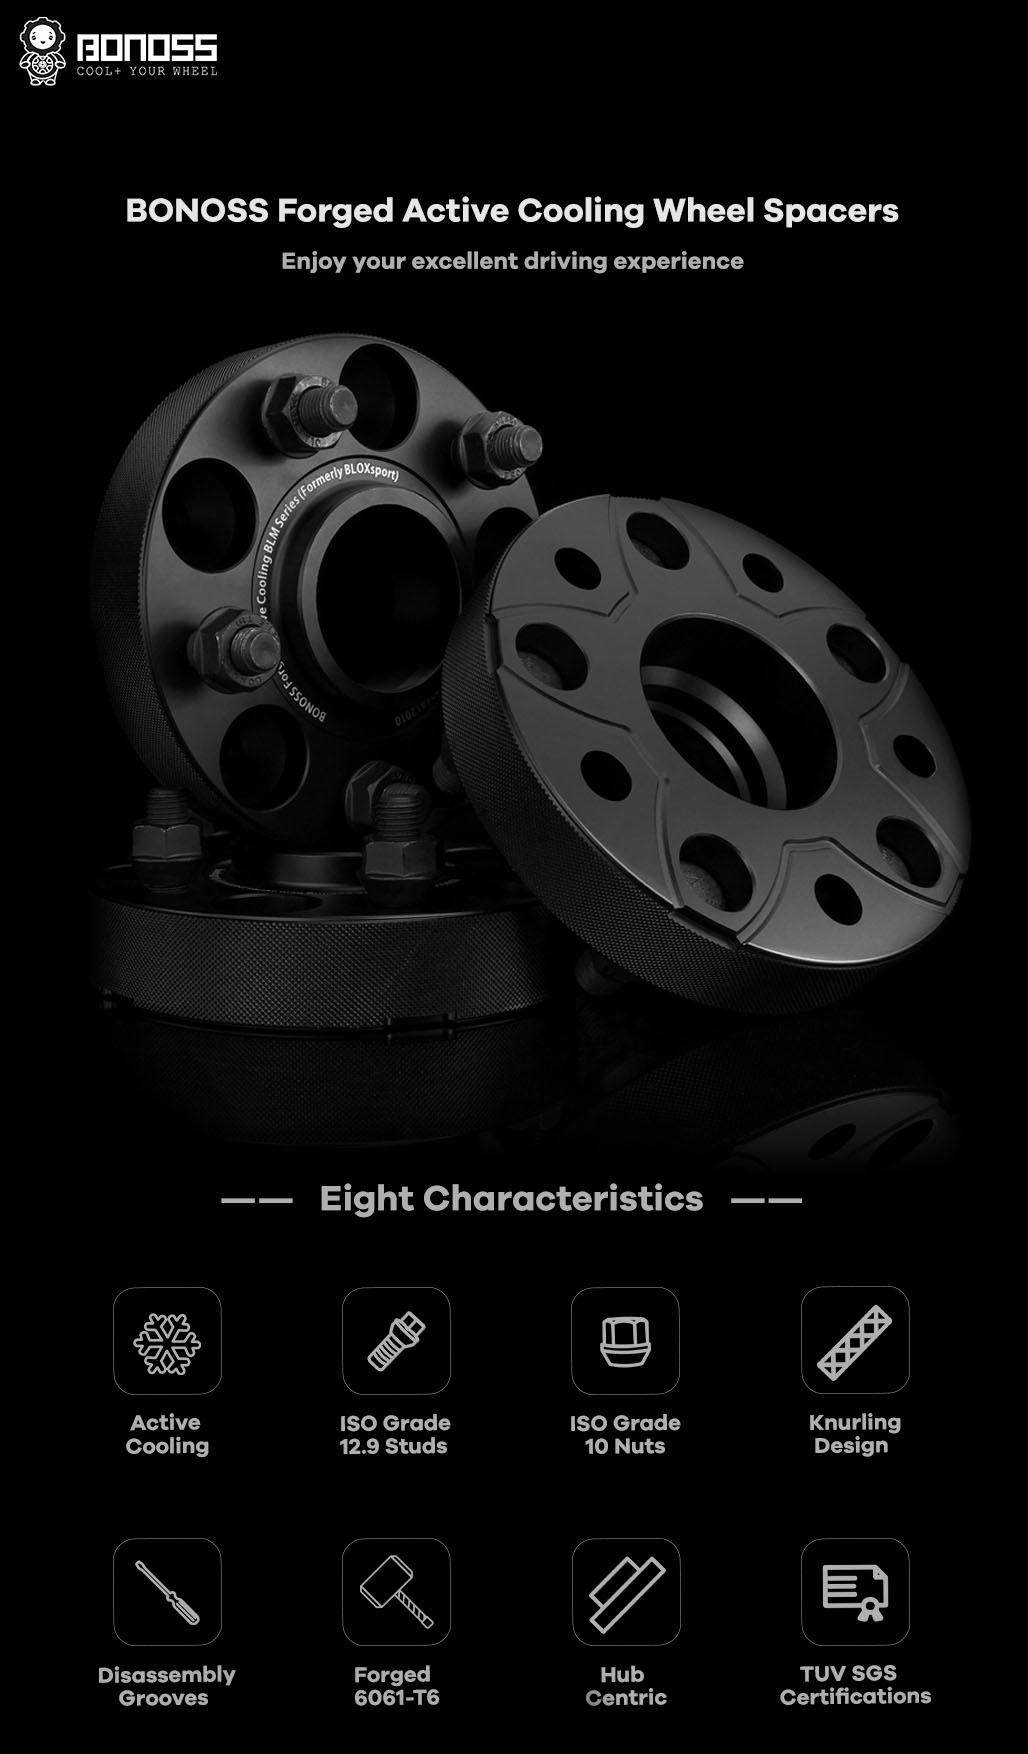 AL6061-t6 BONOSS-forged-active-cooling-wheel-spacer-5x110-by lulu-1